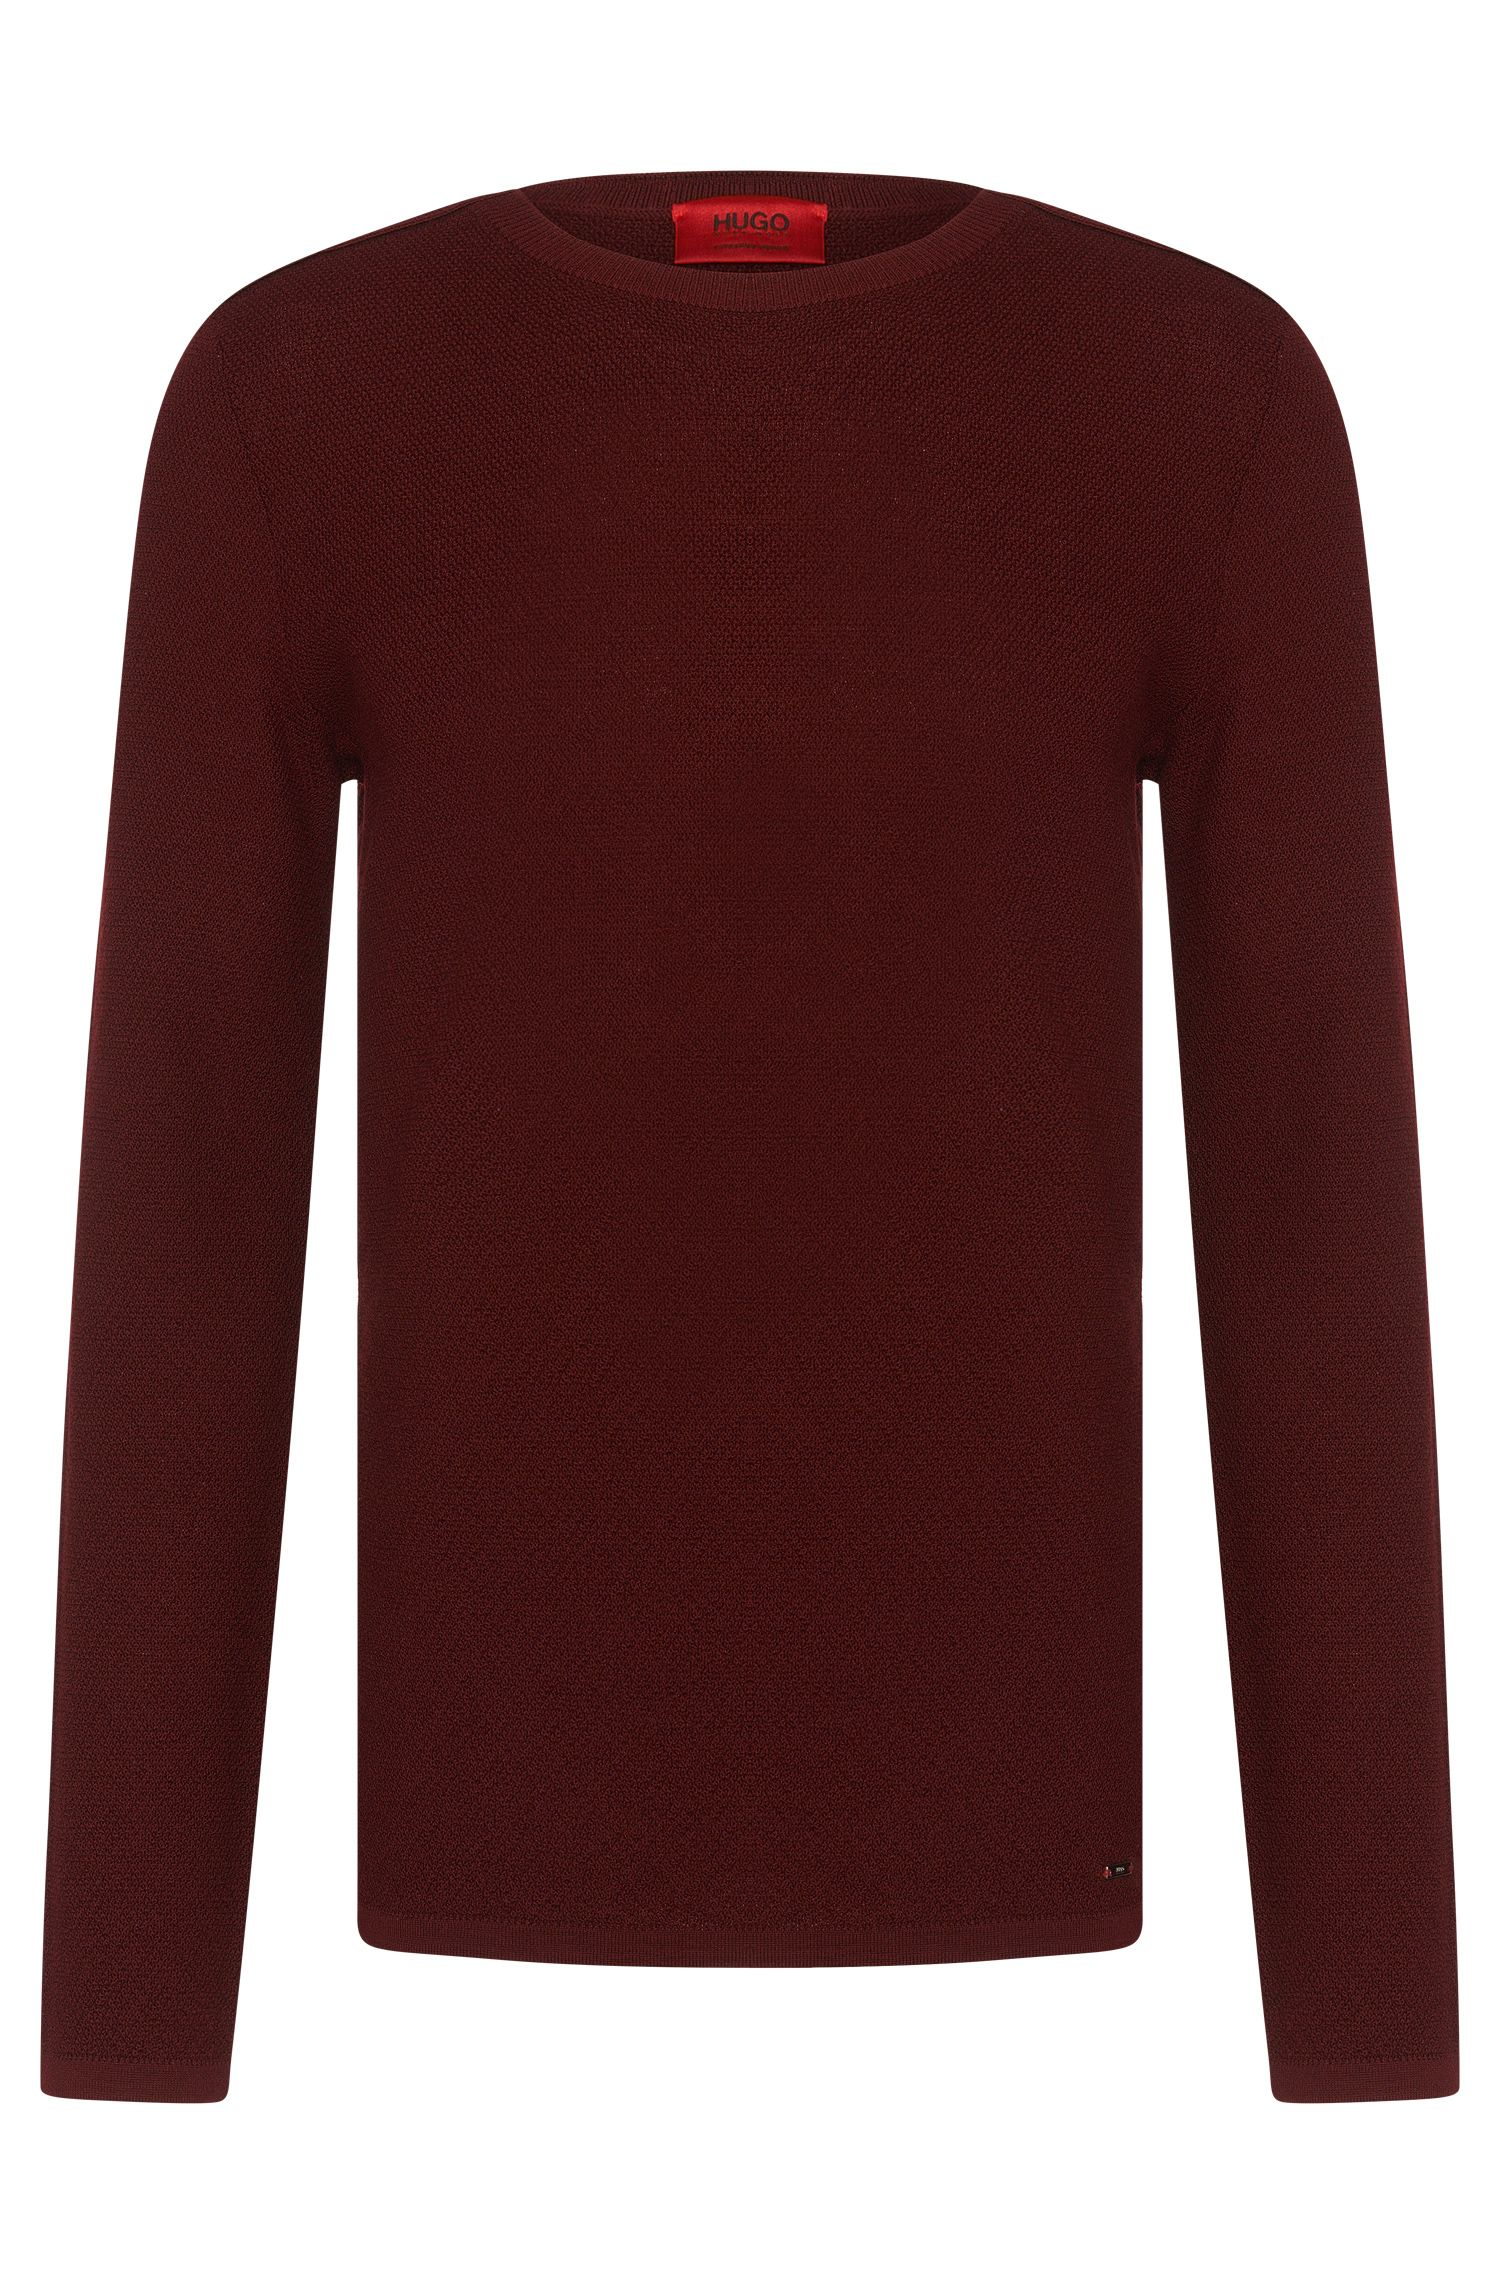 'Salexo' | Merino Virgin Wool Textured Sweater